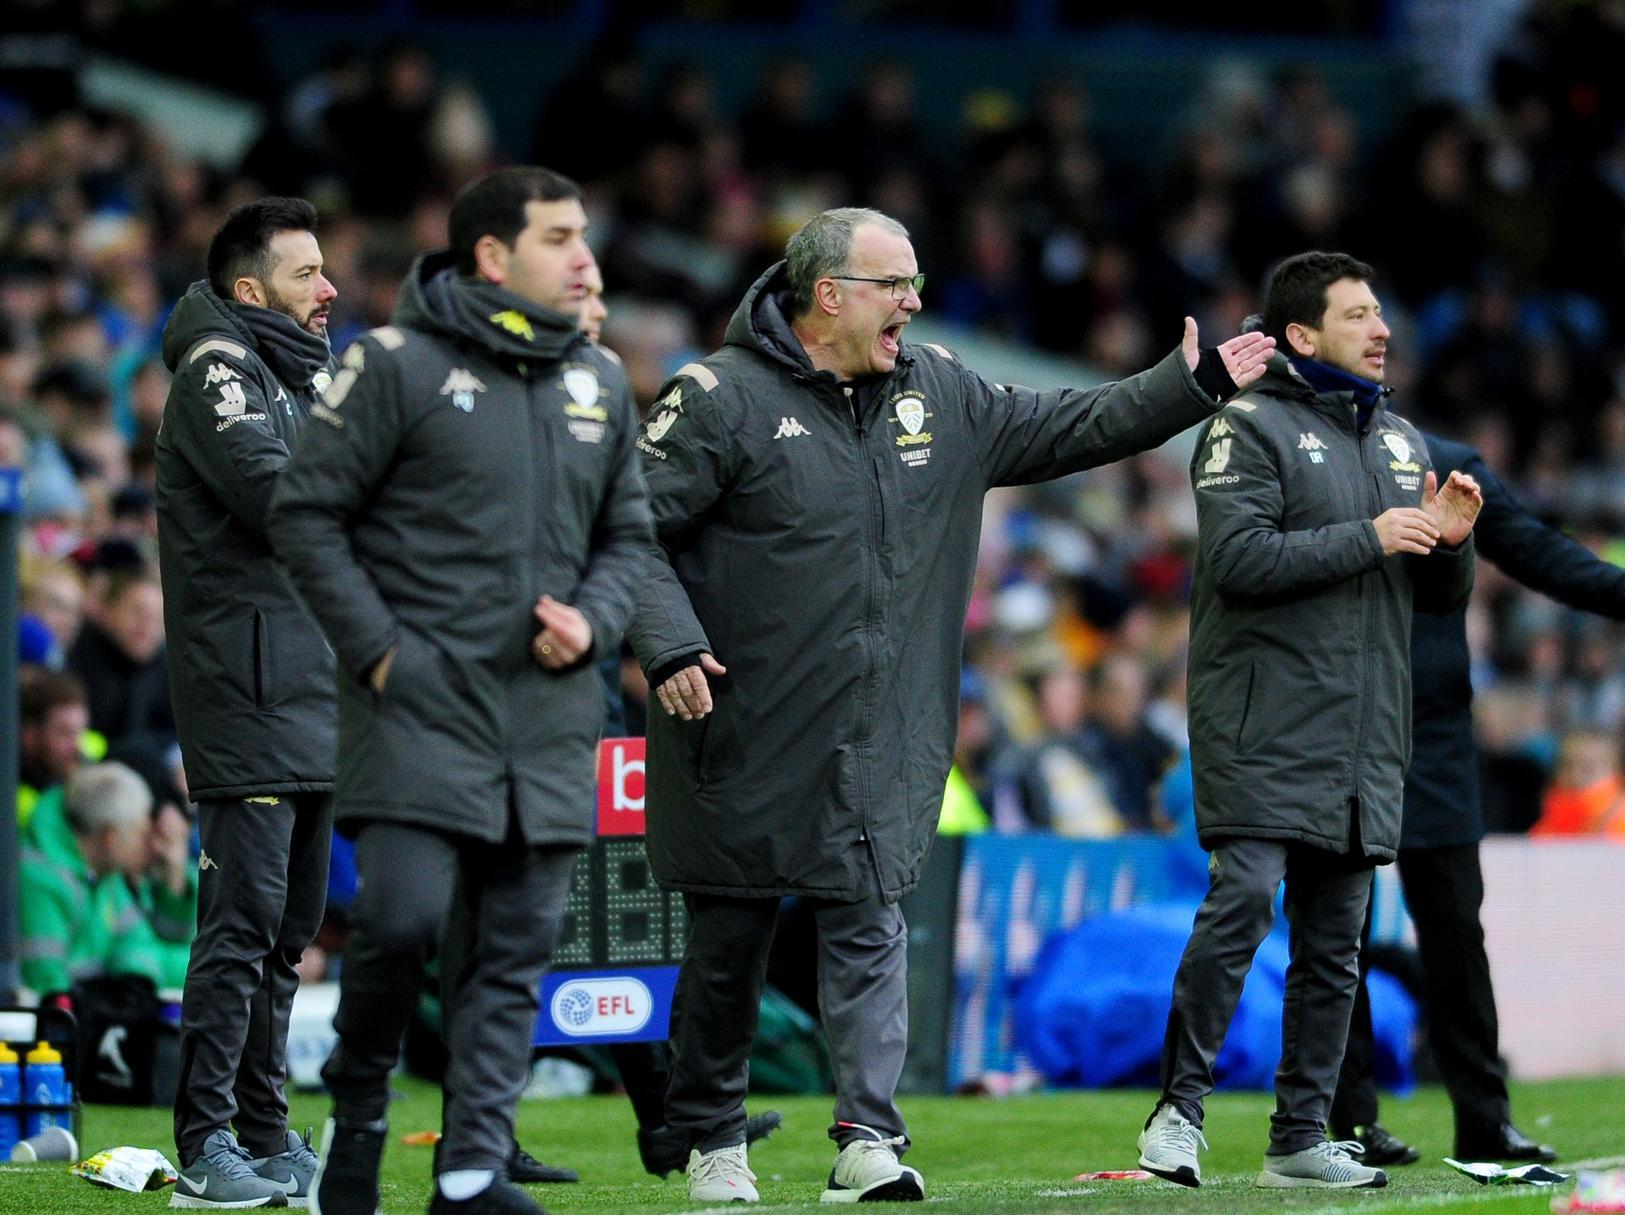 Leeds United Head Coach Marcelo Bielsa Provides An Update On Kalvin Phillips Yorkshire Post